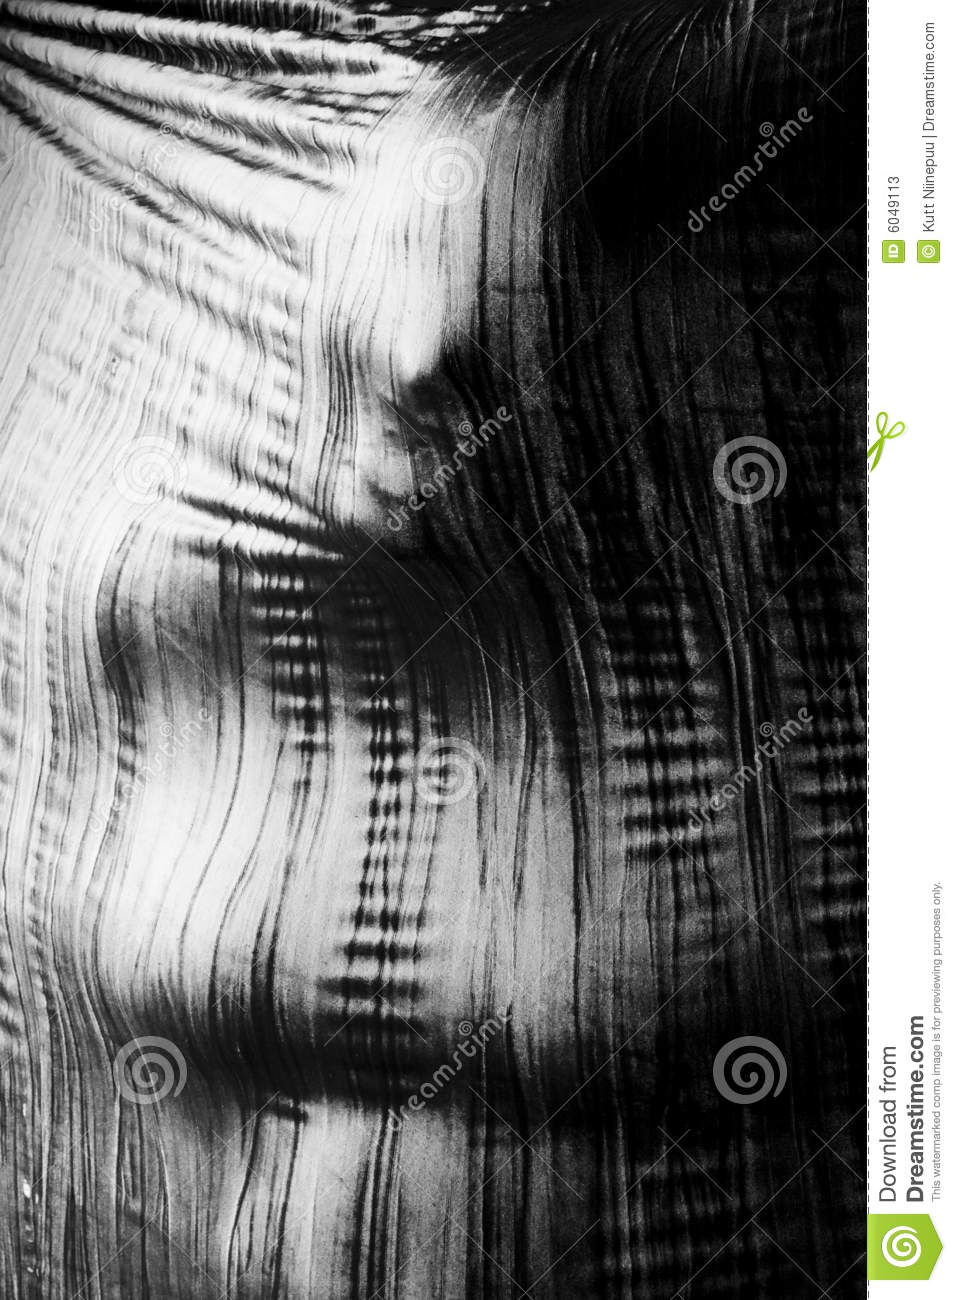 Shrouded clipart #1, Download drawings